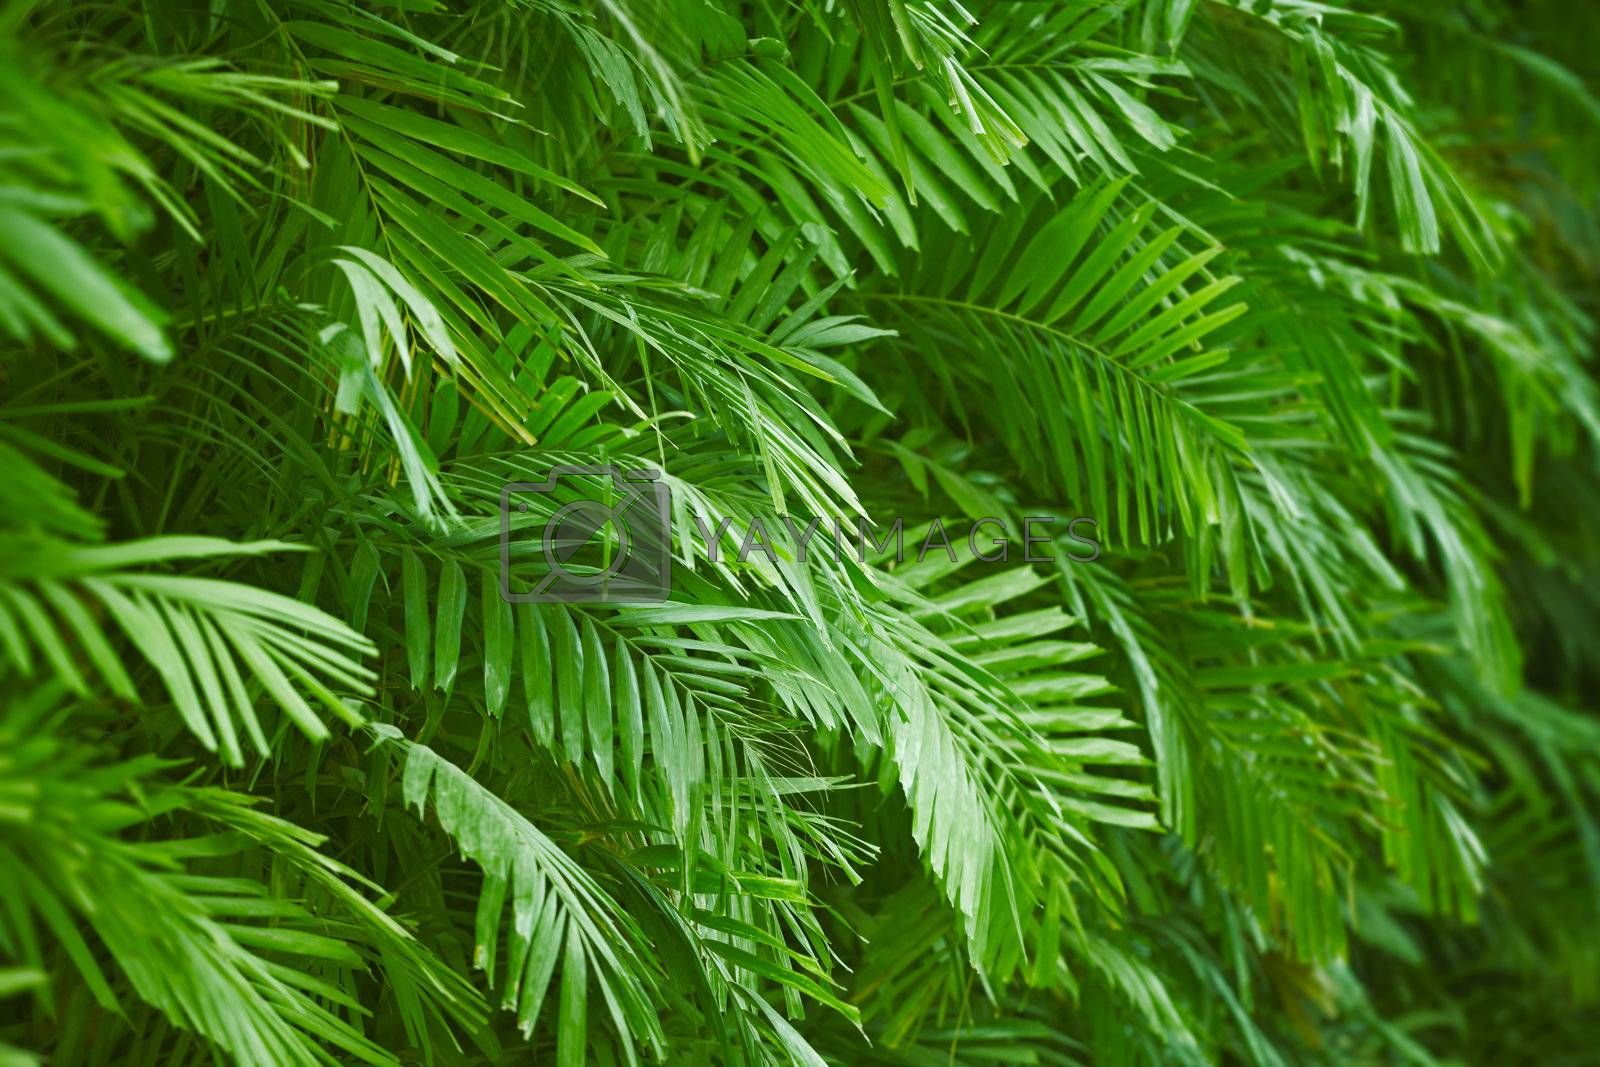 Background - the palm green foliage